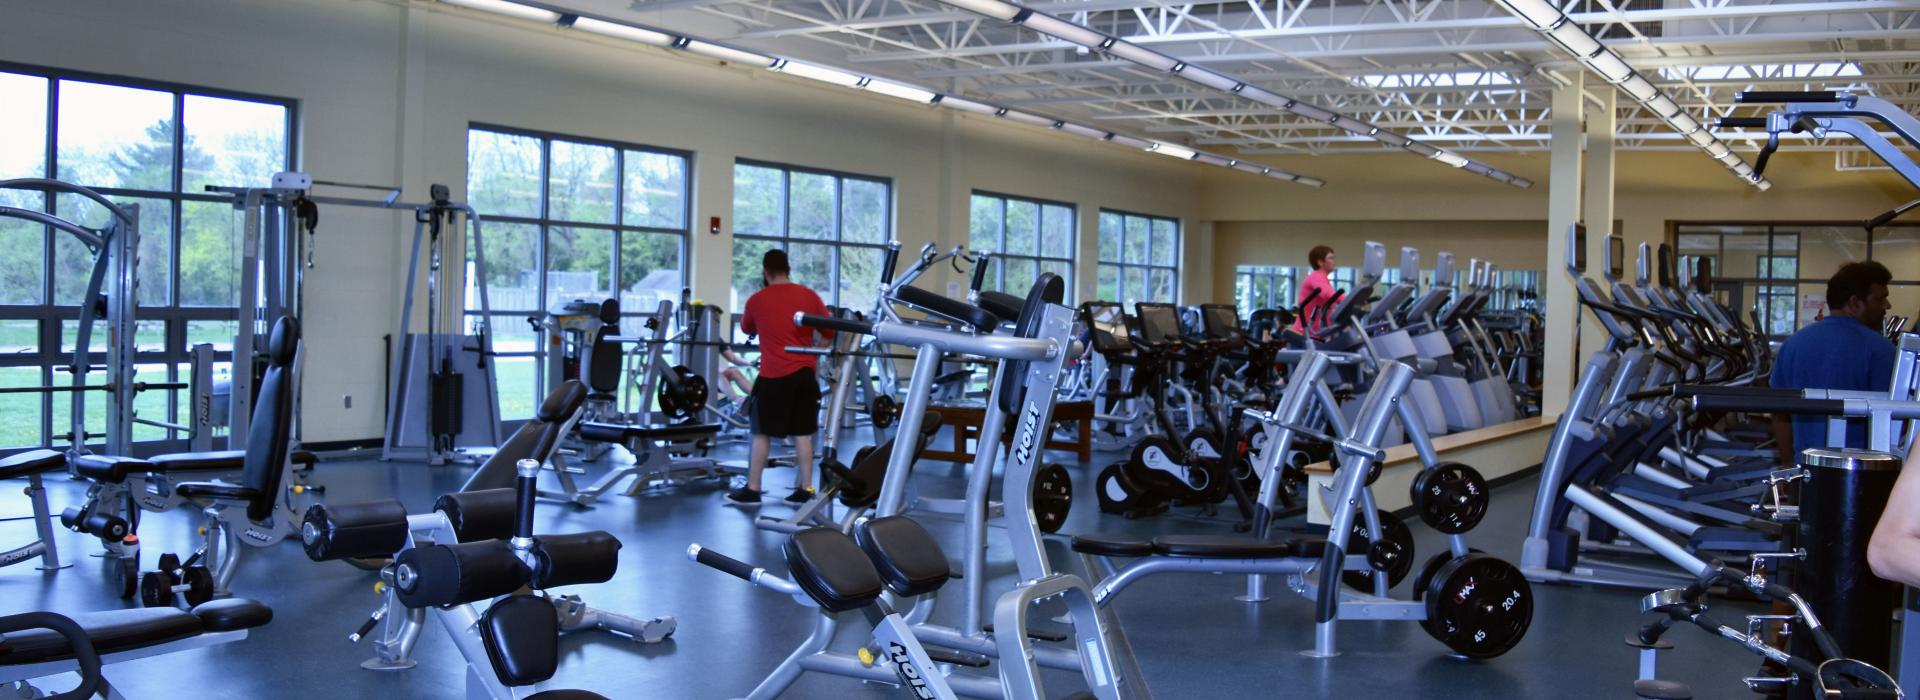 Indian Valley YMCA | YMCA Hartford